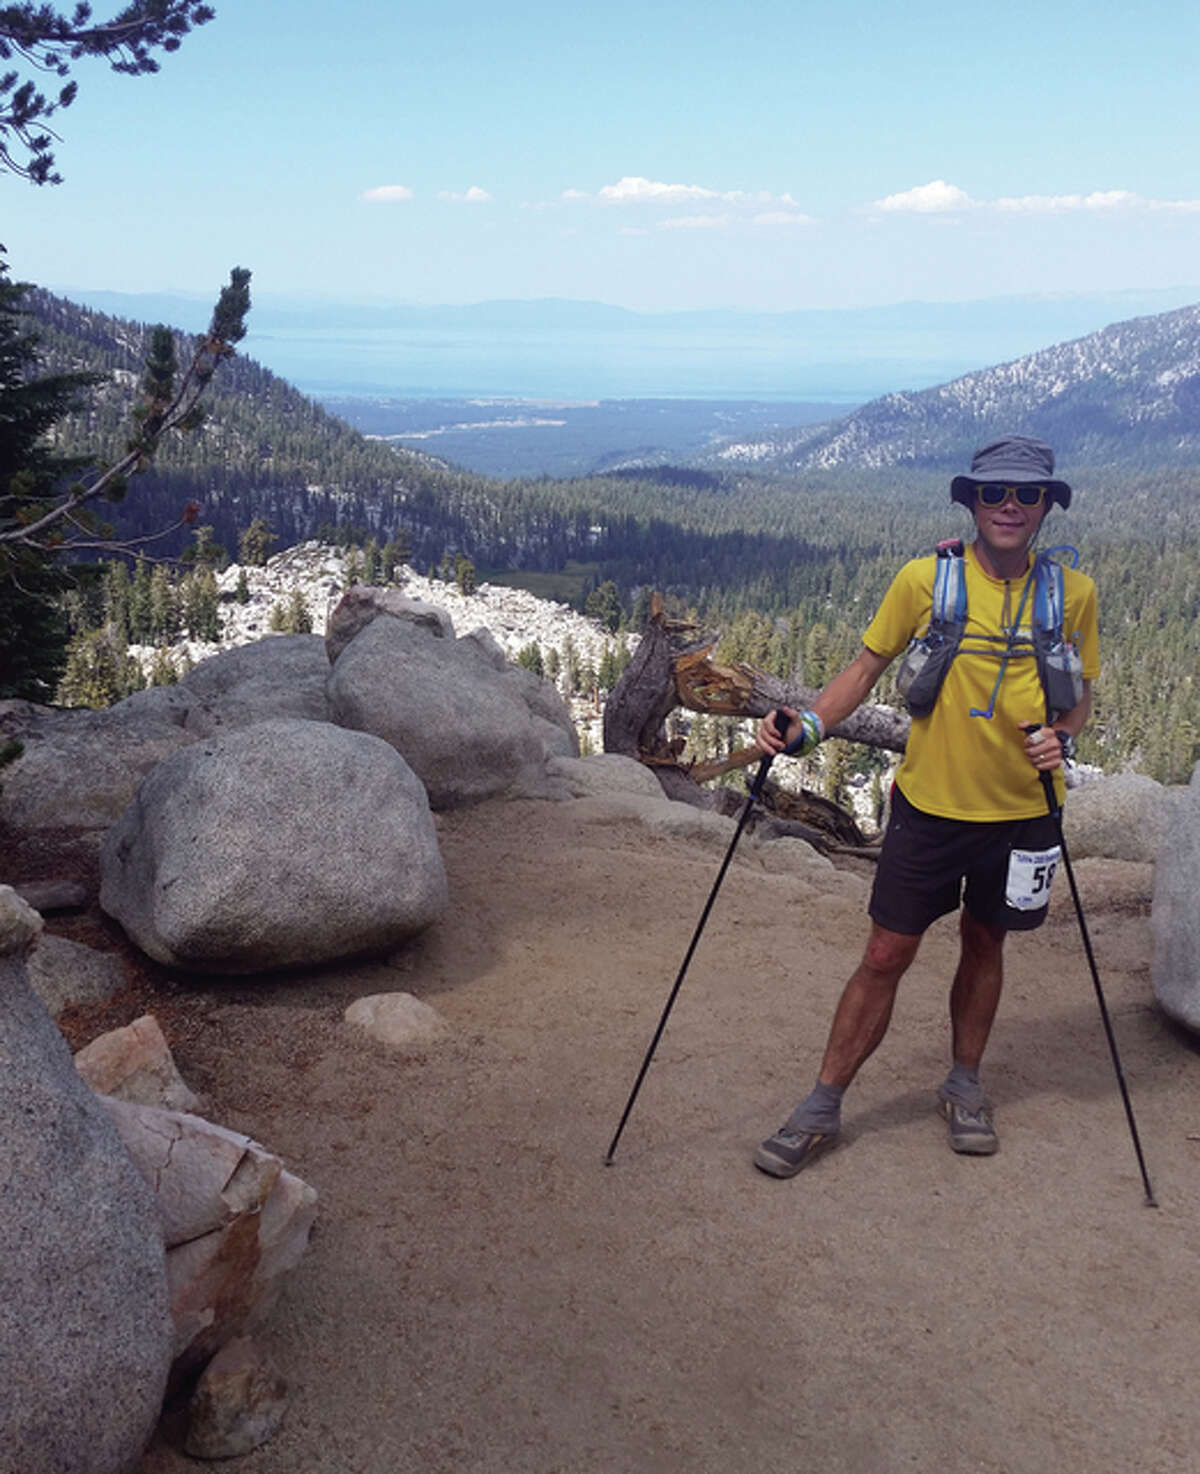 Justin Galbraith, an Alton High School graduate, poses for a photo during the Tahoe-200, a 205-mile running race around Lake Tahoe. He completed the race is 85 hours with very little sleep.